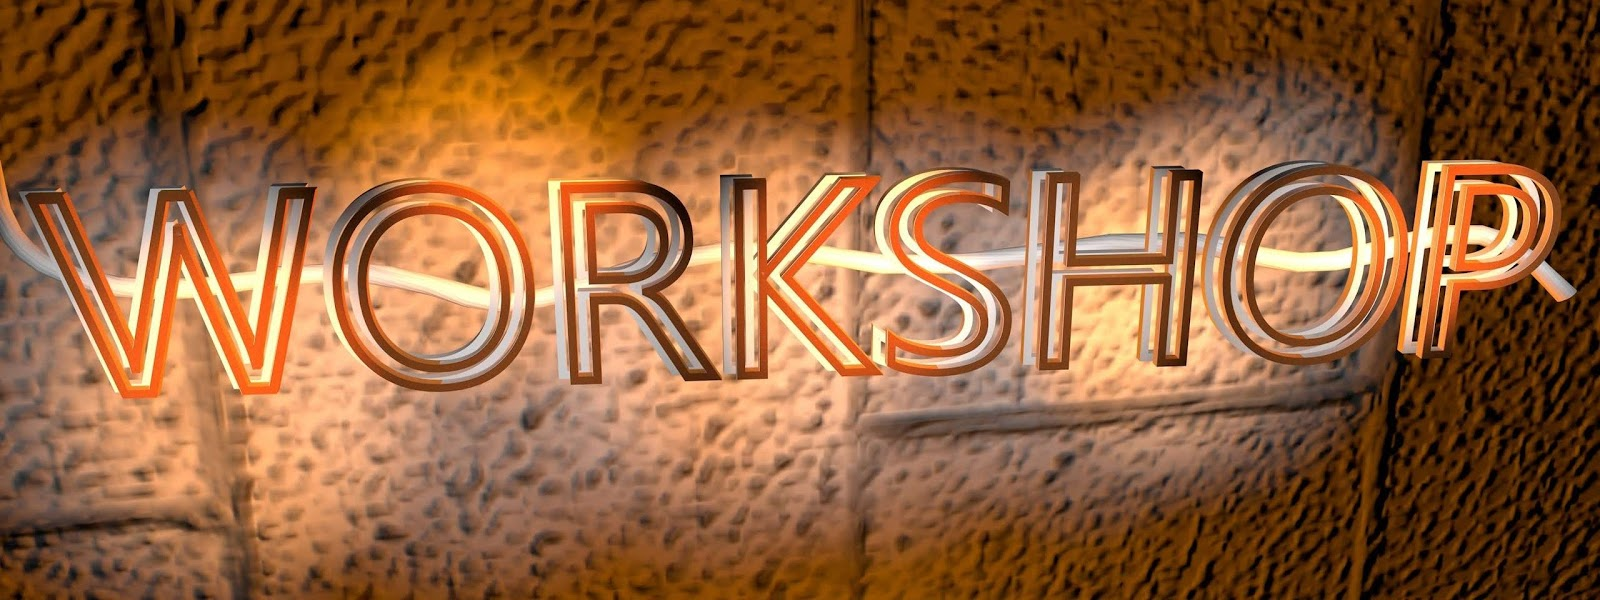 an illuminated sign that says workshop